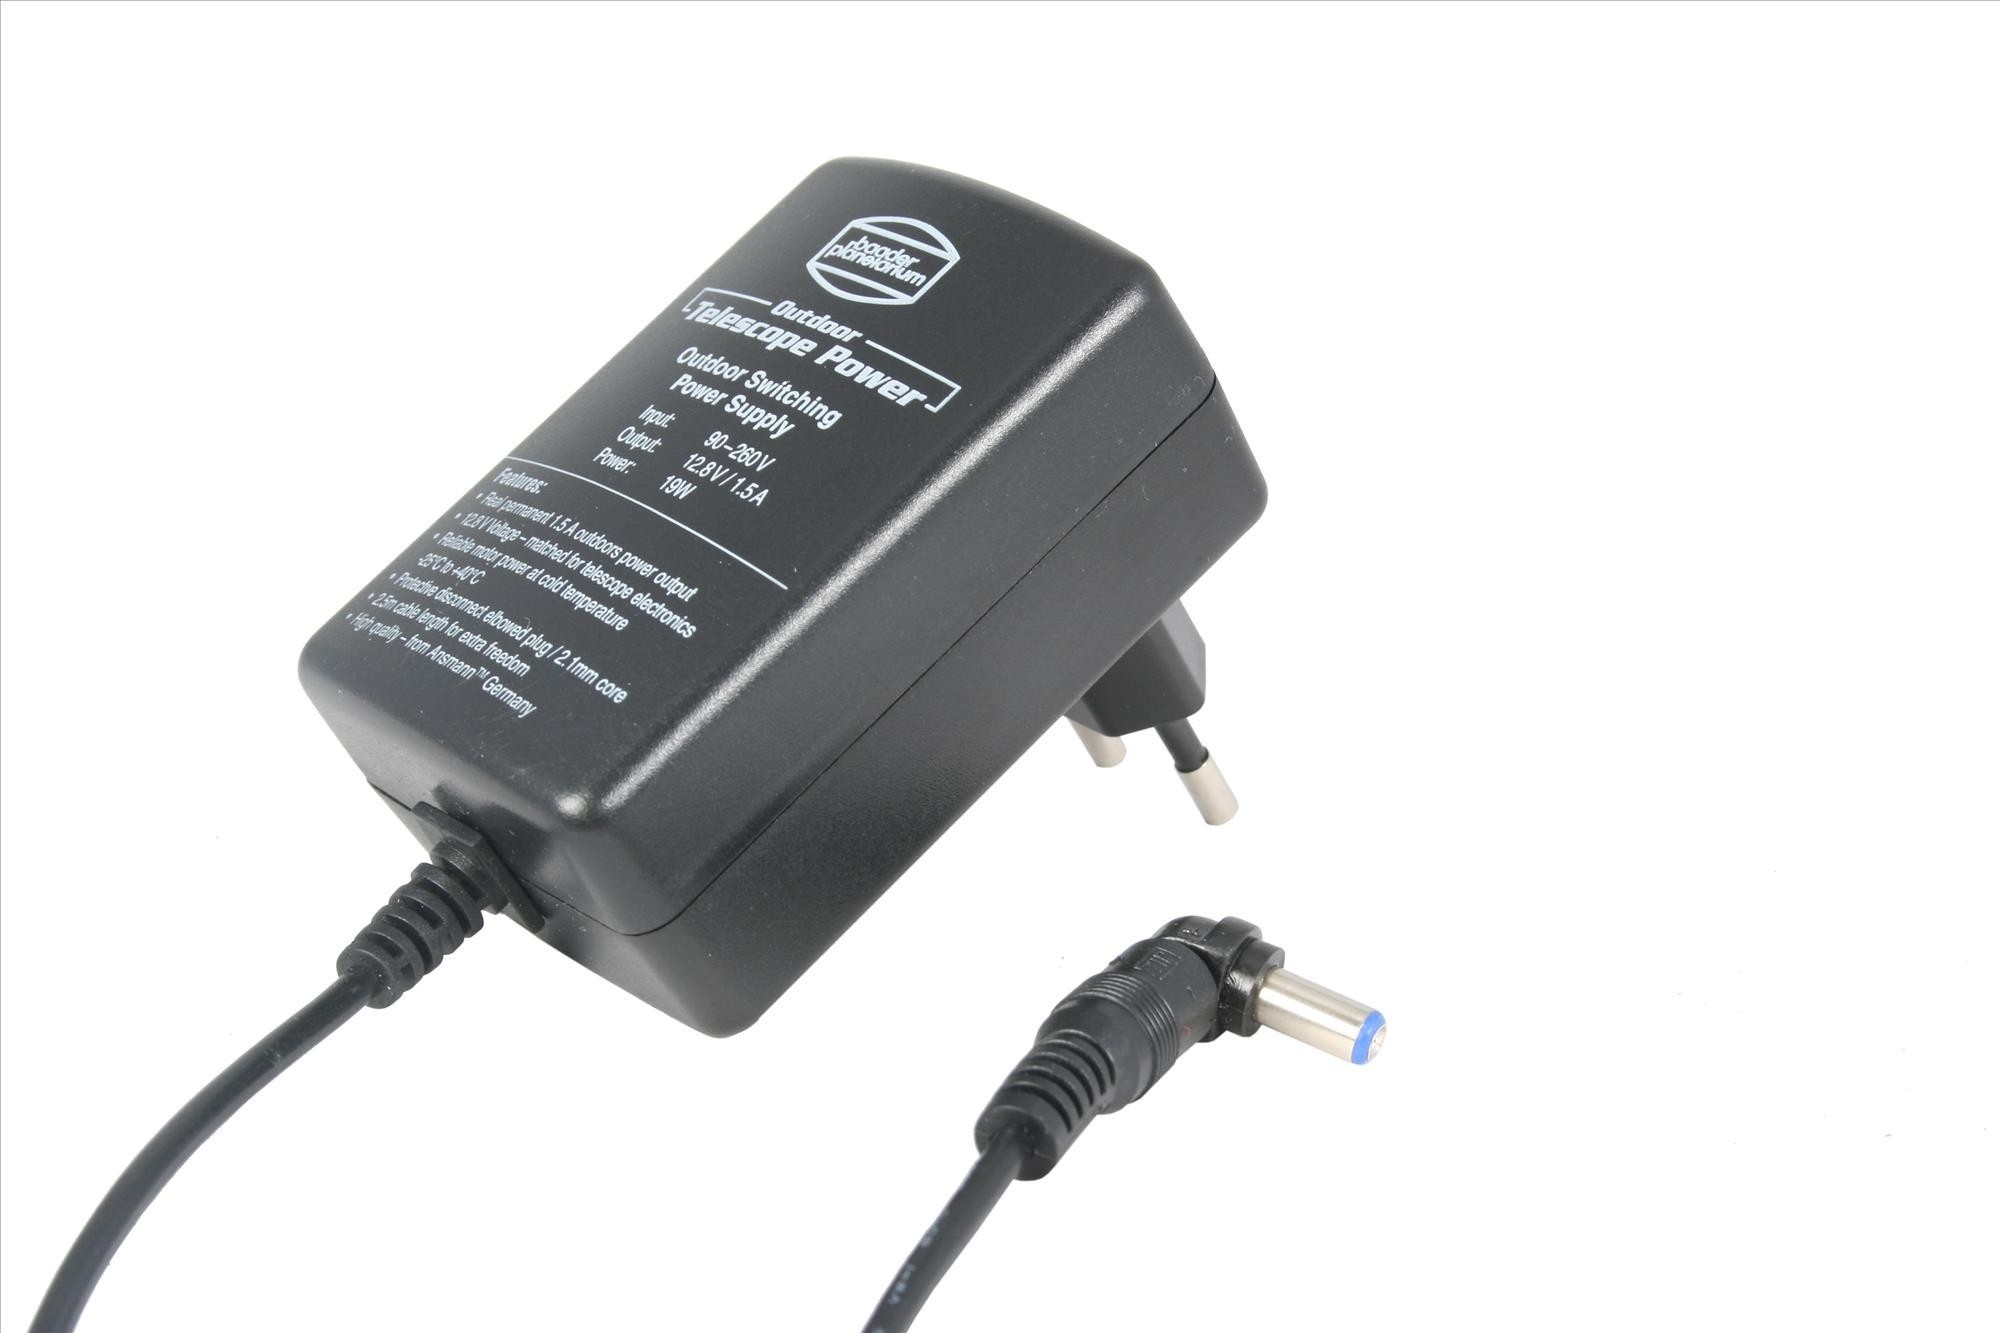 Baader Outdoor Telescope Power Switching Power Supply 12.8V / 1.5A 19W with elbowed plug -25°C up to 40°C